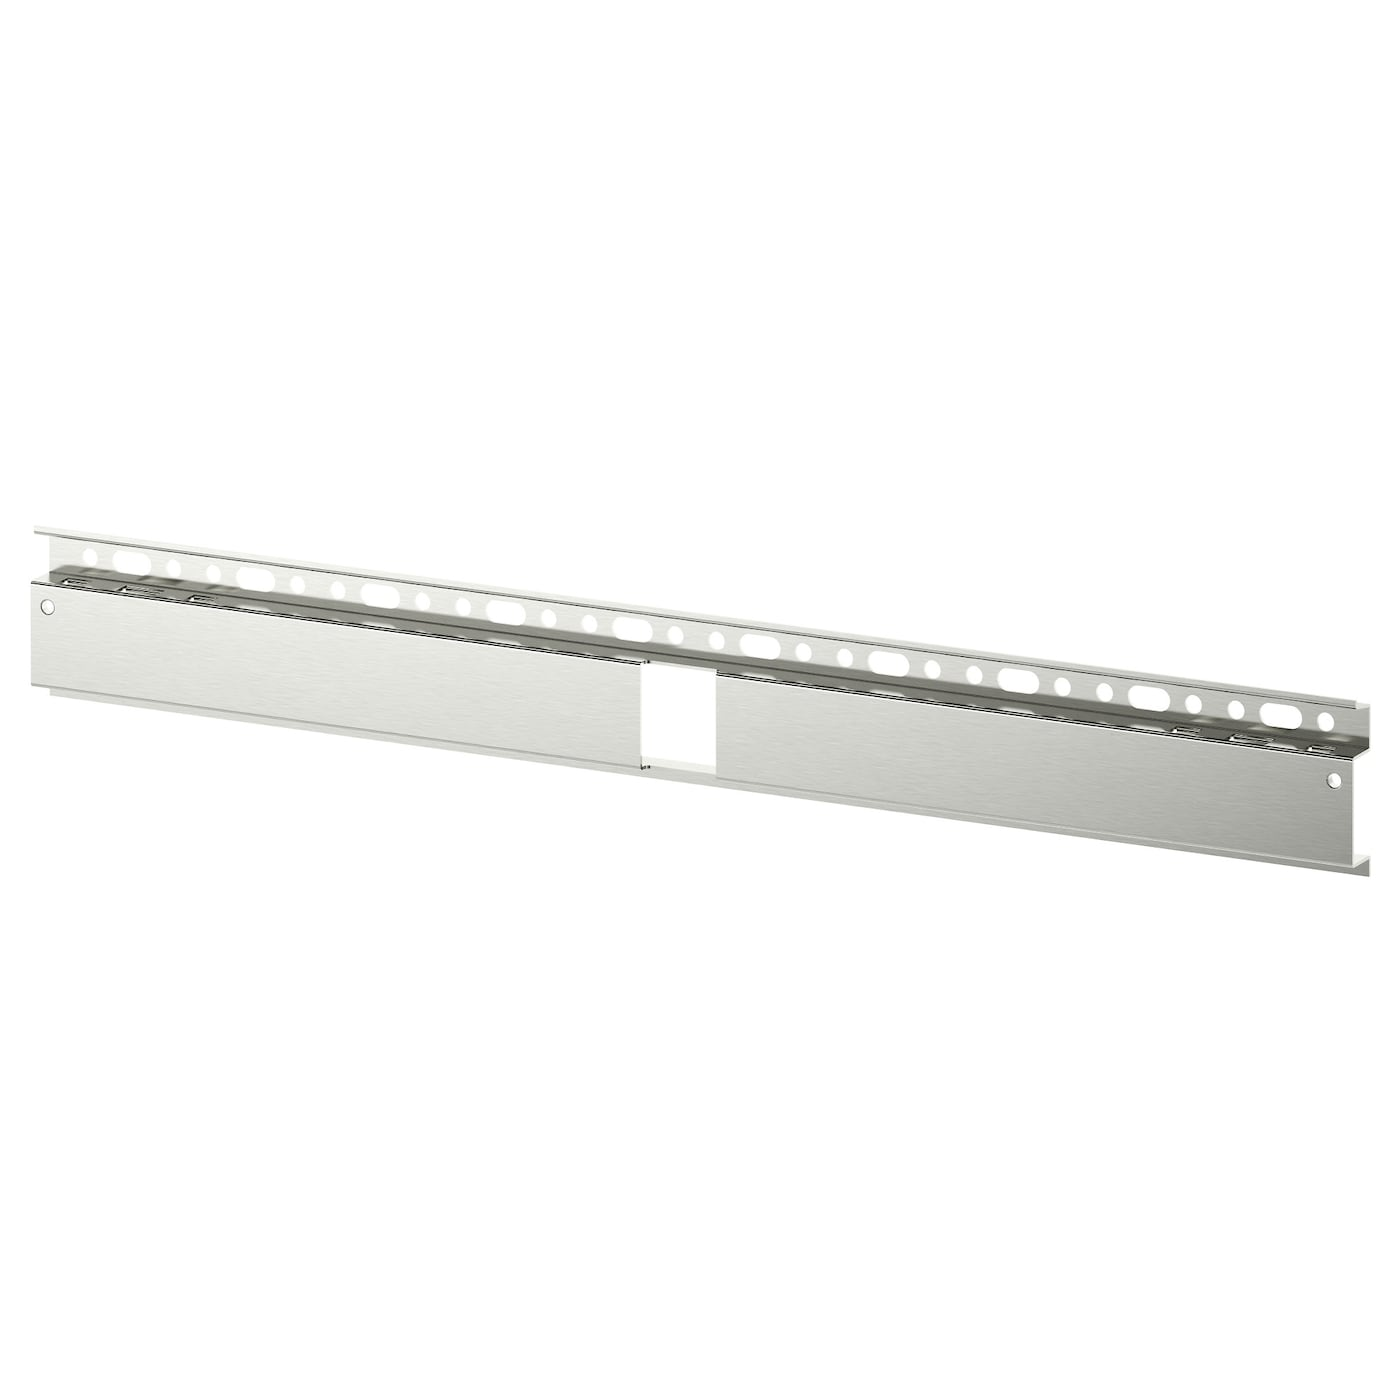 Rail luminaire ikea interesting best awesome luminaire for Suspension luminaire filaire